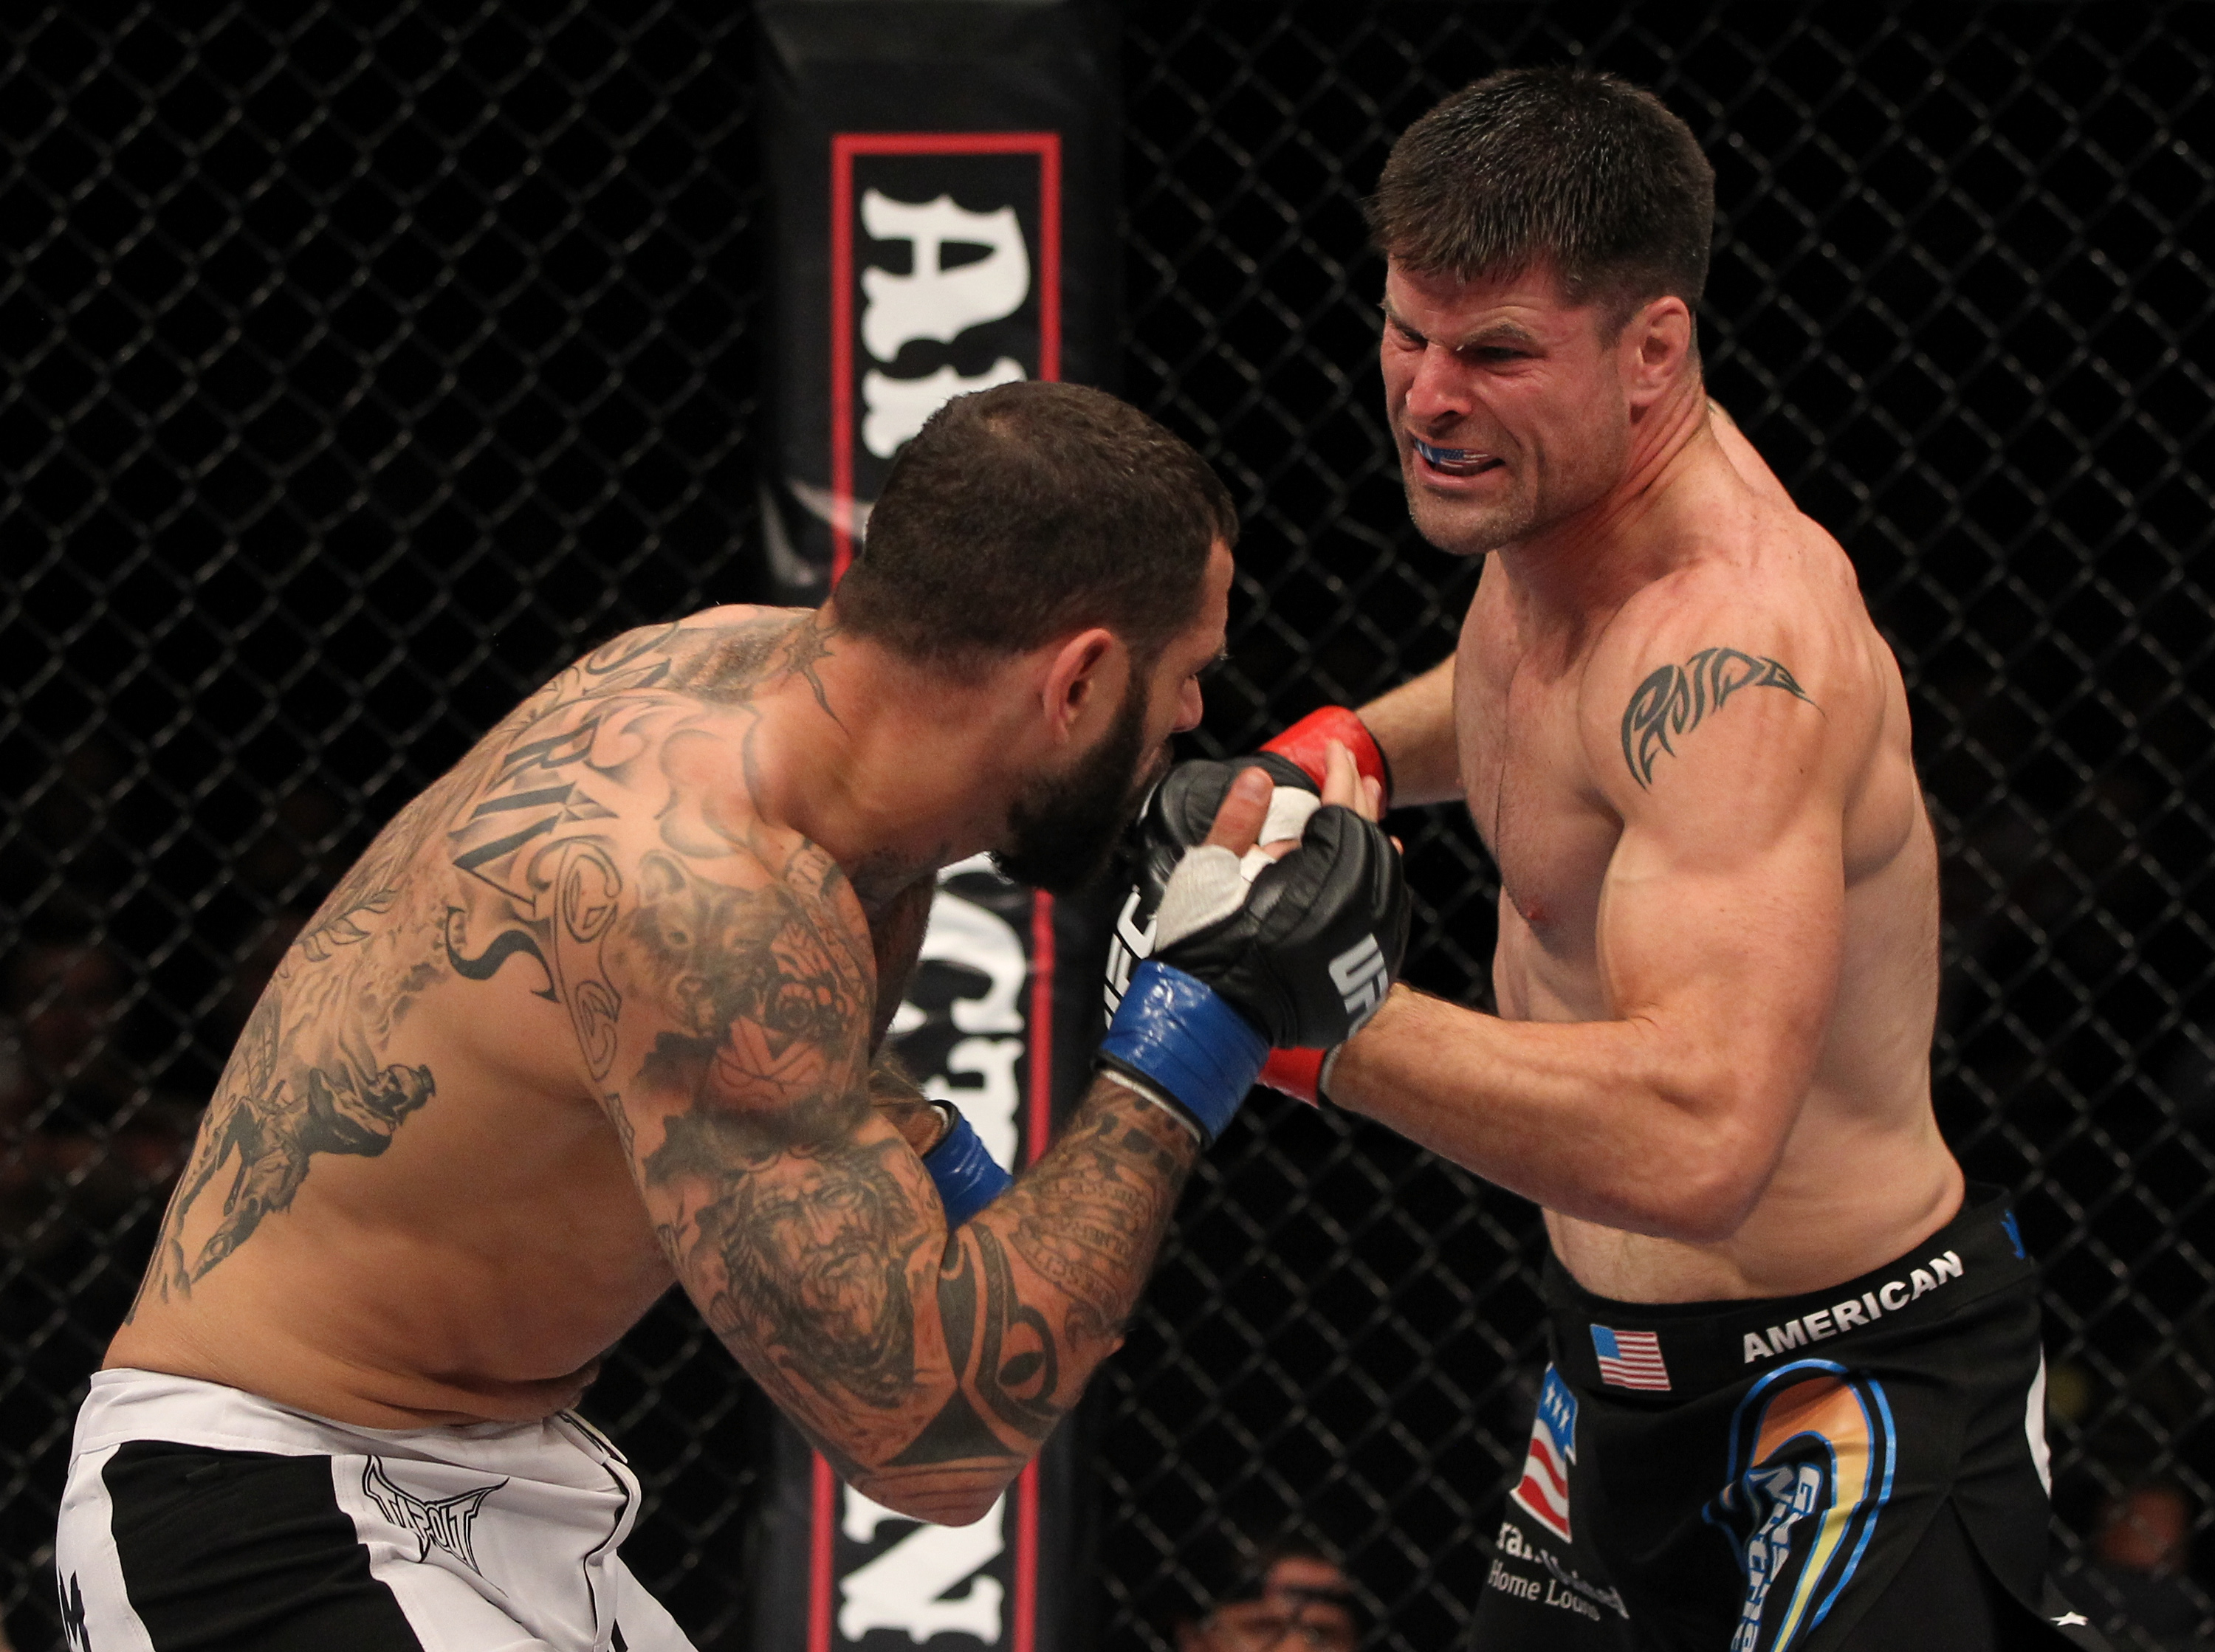 Brian Stann knocked Alessio Sakara out cold in his last fight on April 14. (Getty)